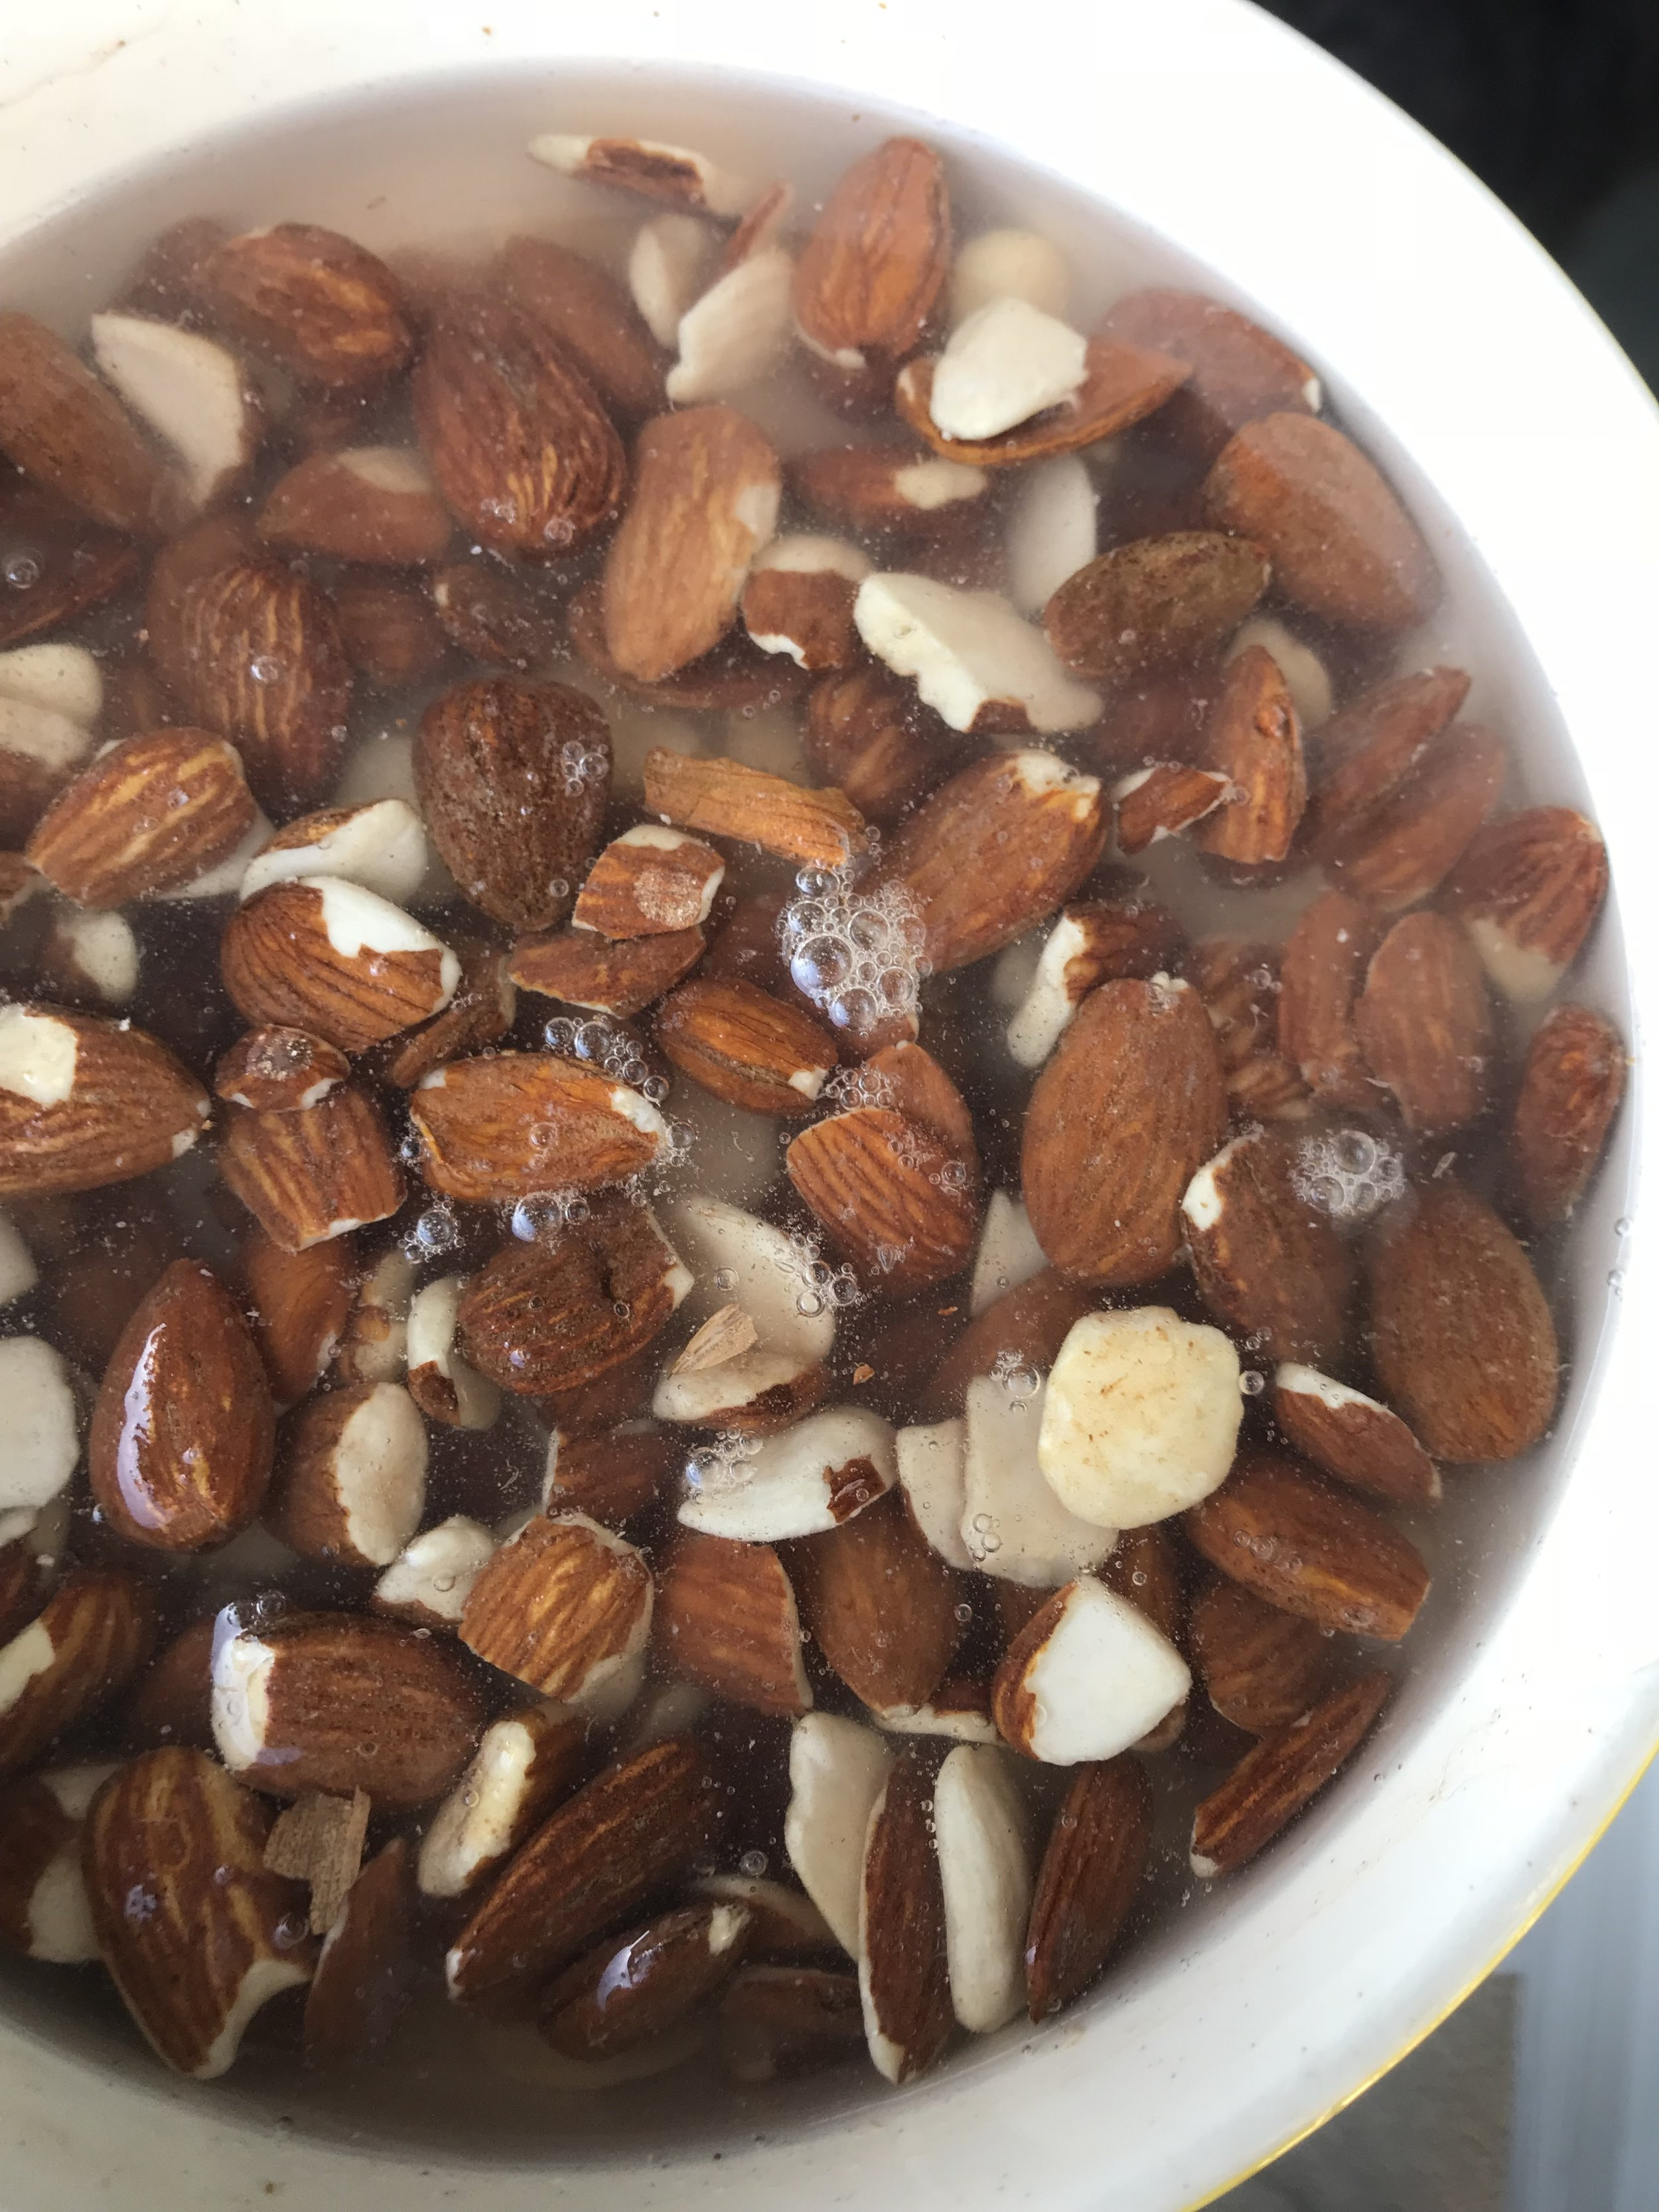 Make sure your nuts have pre-soaked